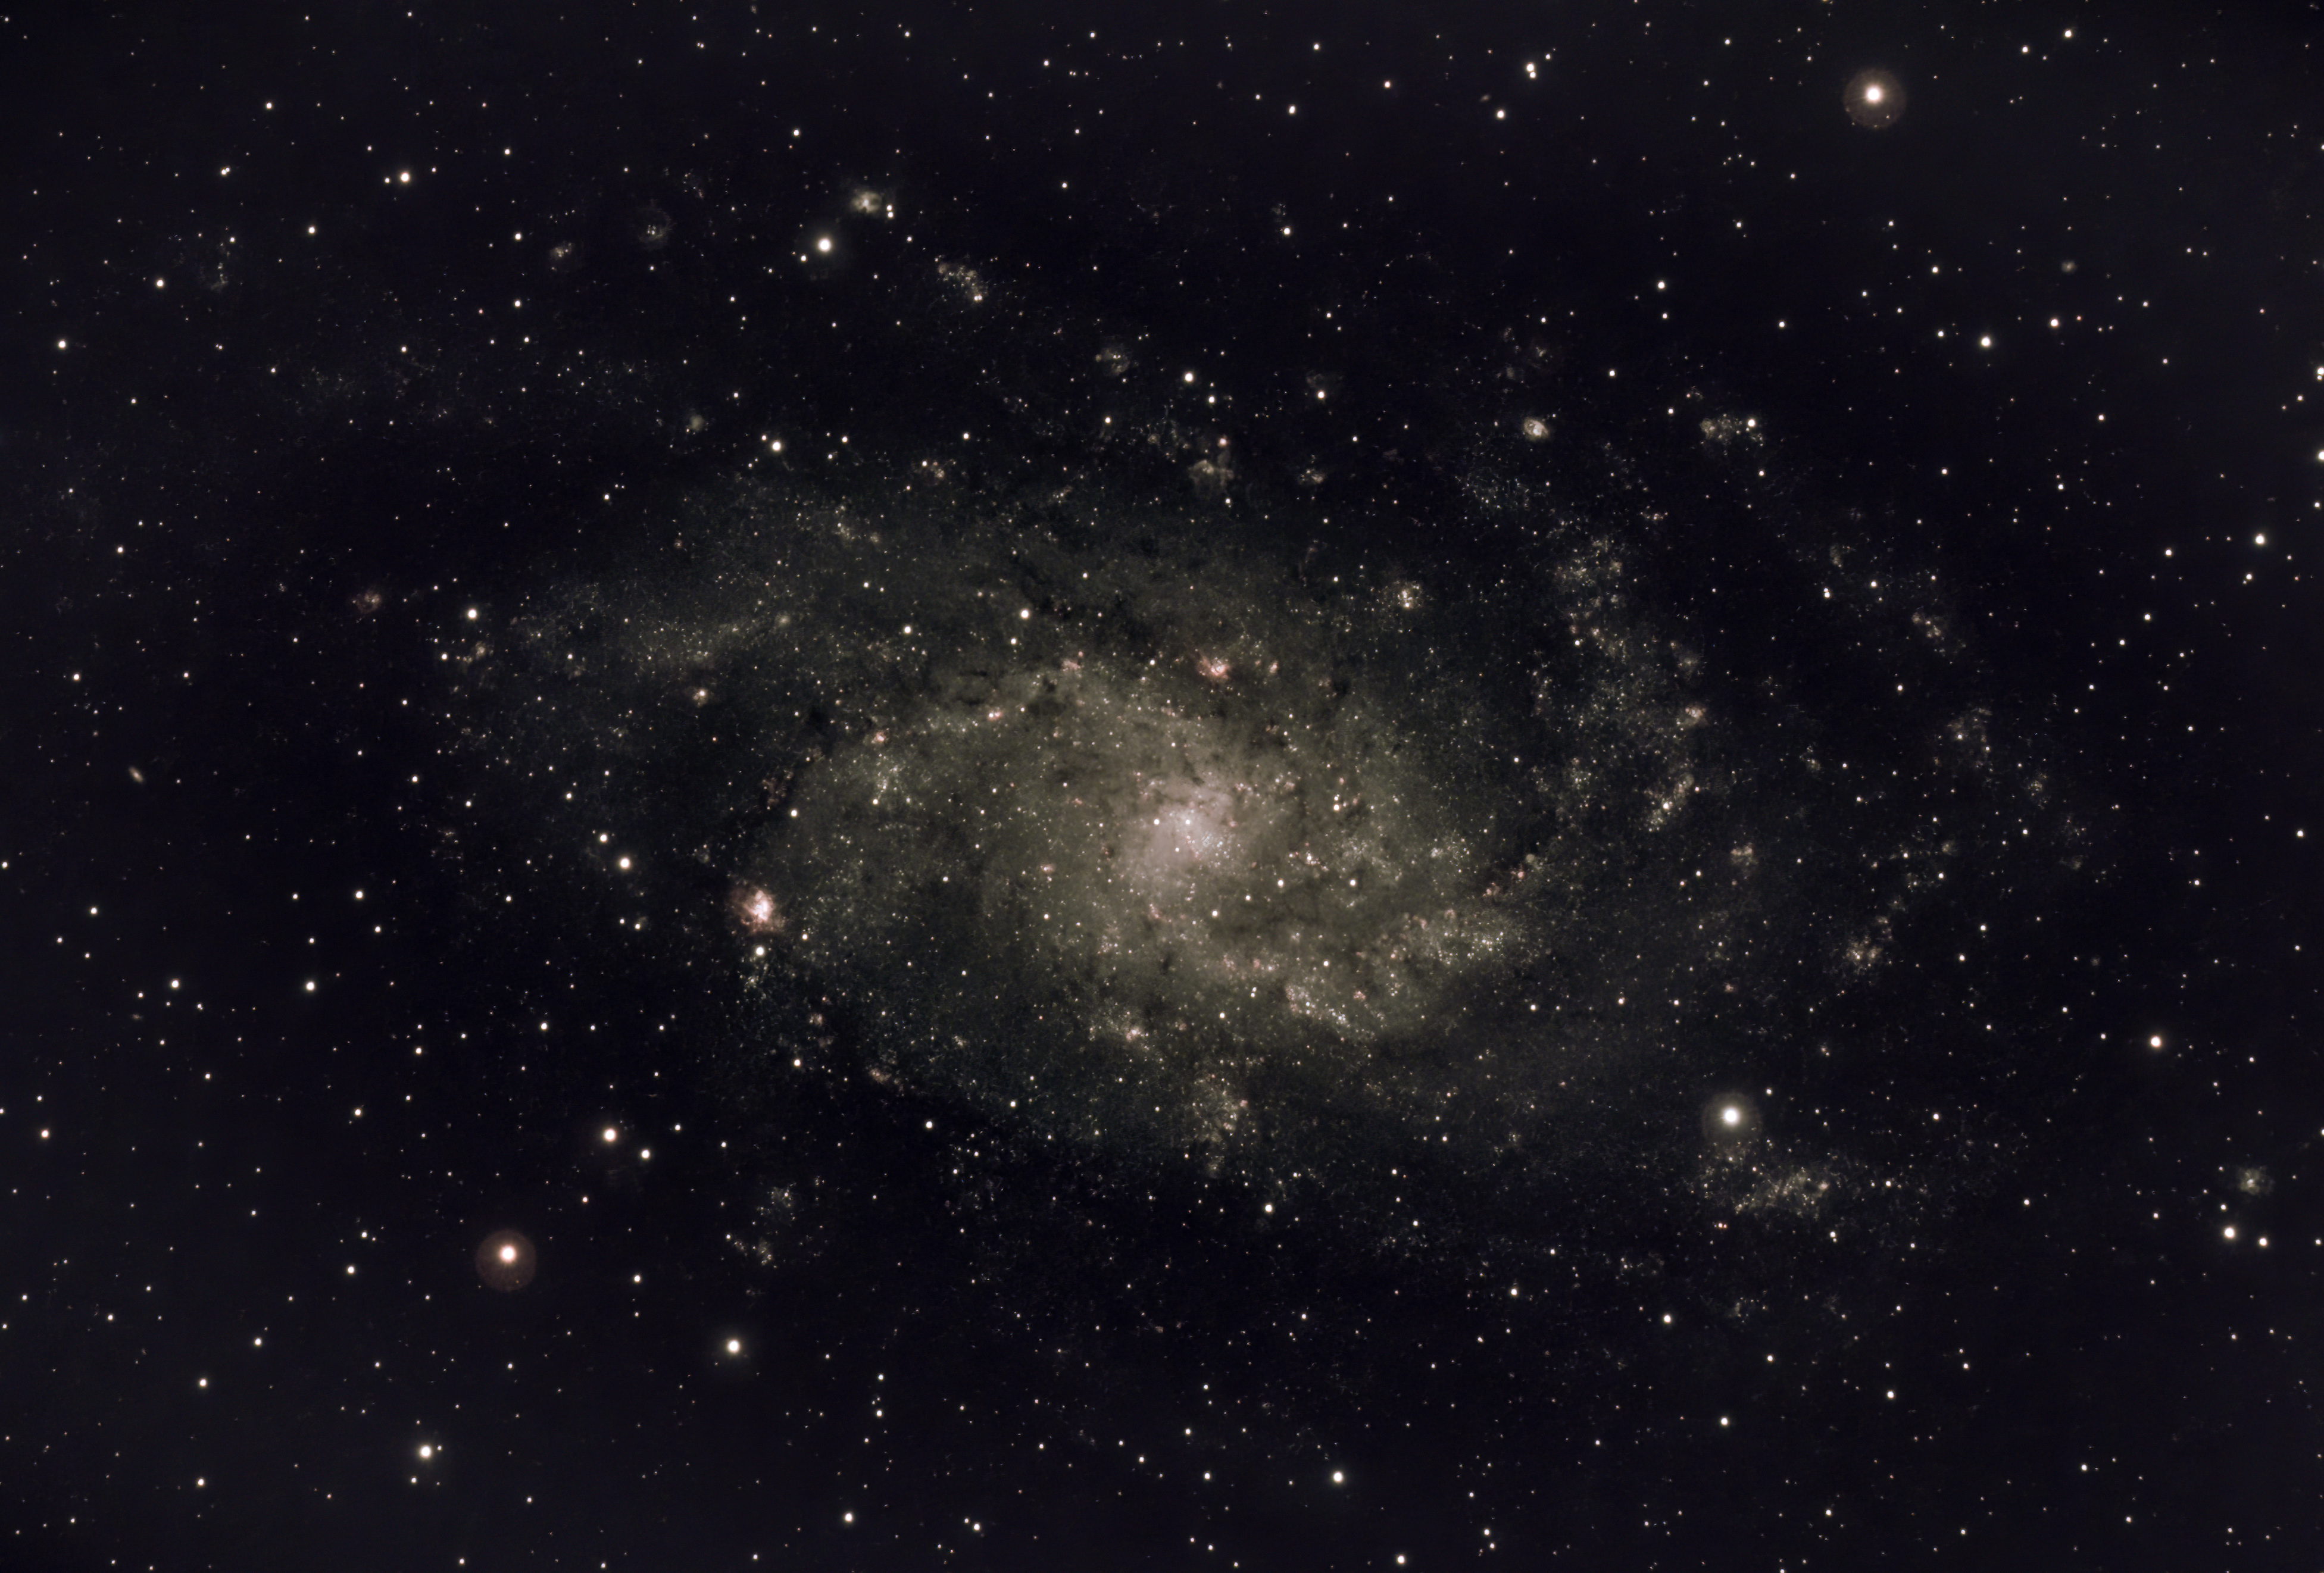 M33 or Triangulum Galaxy (Ian A Smith) Skywatcher 190MN, NEQ6 mount, Altair Tri-band filter, ASI294MC Pro at -20C. 29 x 5 minute exposures (2 hour 25 minutes) at Gain 275, Offset 30 , 50 dark frames and 50 flat fields, 50 dark flat frames. Processed in APP, Pixinsight, Topaz de-noise and Photoshop. 27th September 2021, a bit windy.